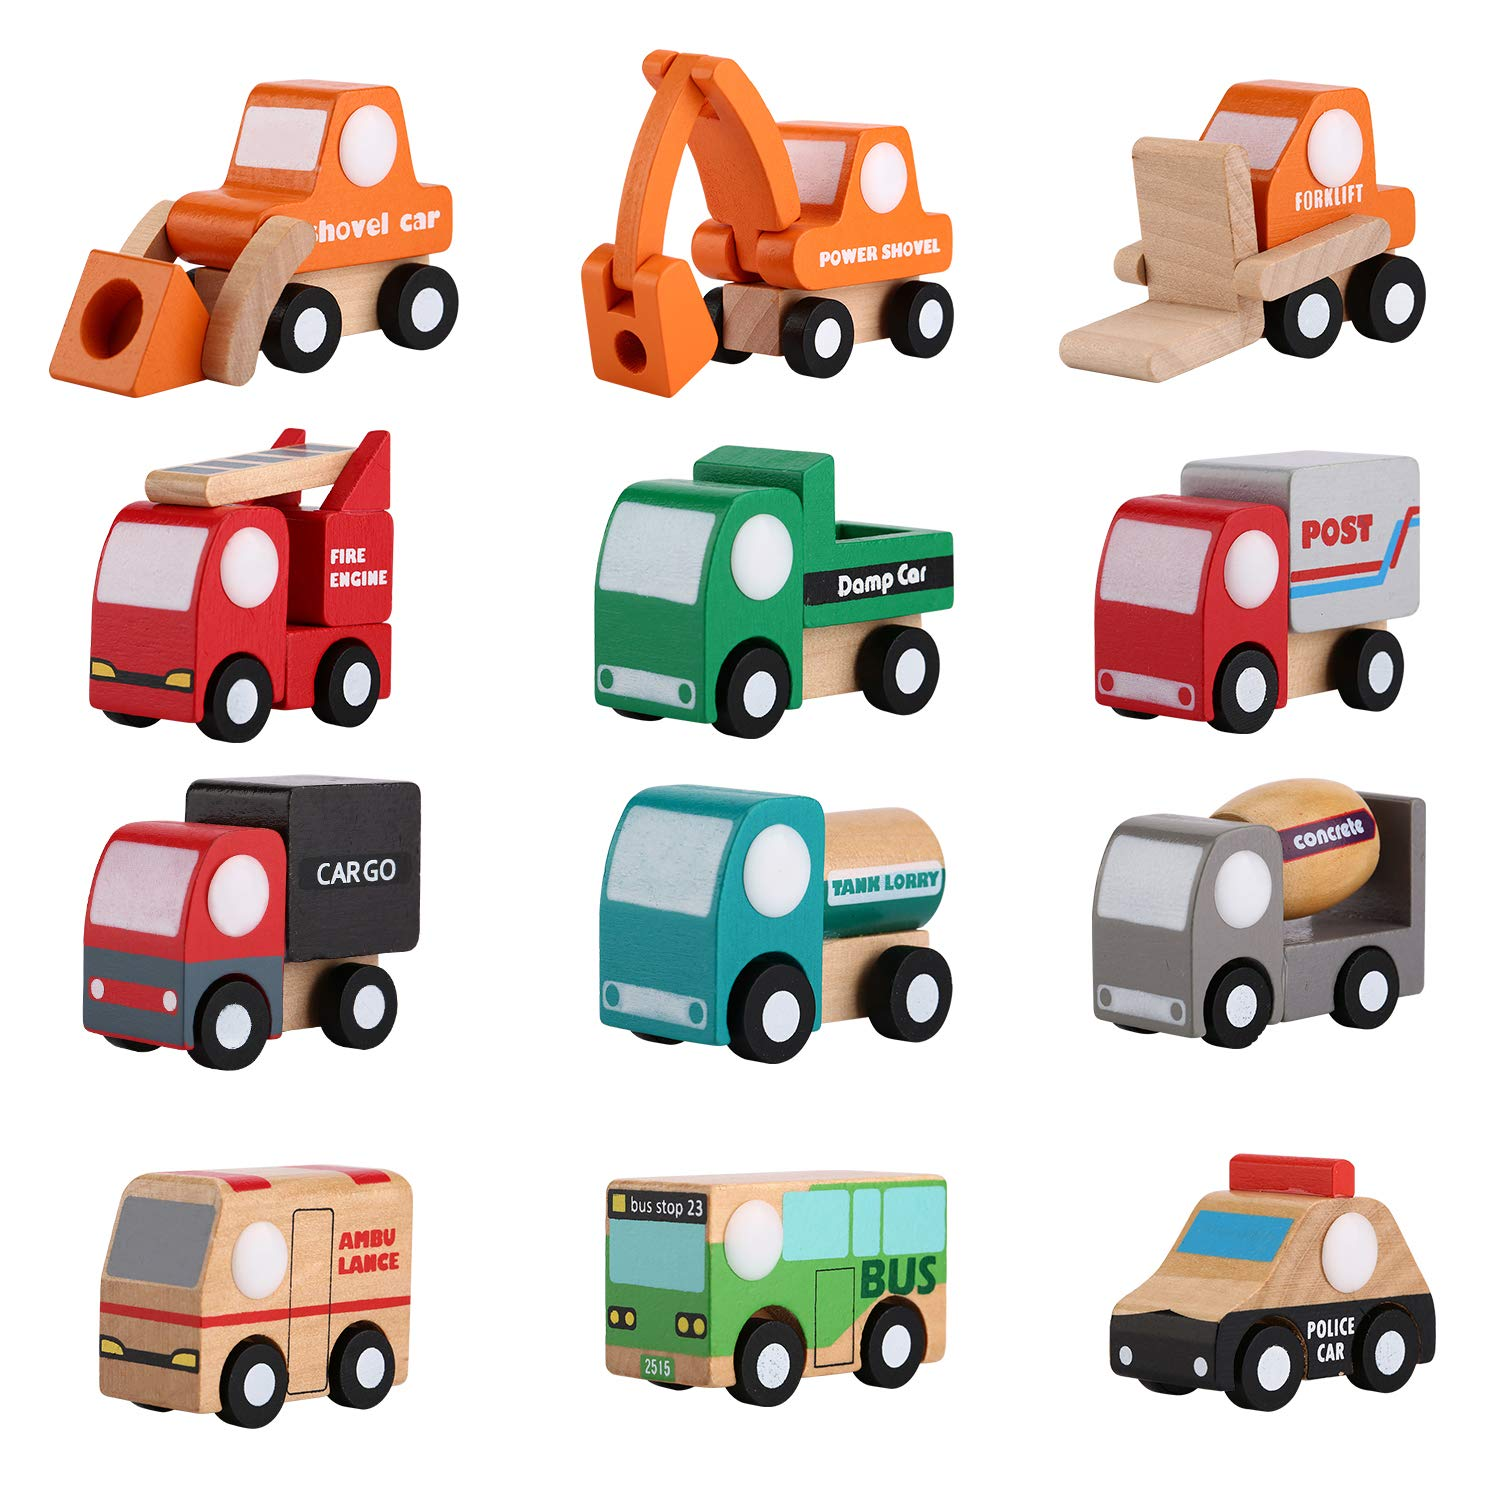 NaKita Kids Wooden Toy Cars 12 Pcs Mini Assorted Construction Vehicles and Traffic Trucks Model Cartoon Push Car Baby Educational Toy Play Set for Toddlers Boys Grils